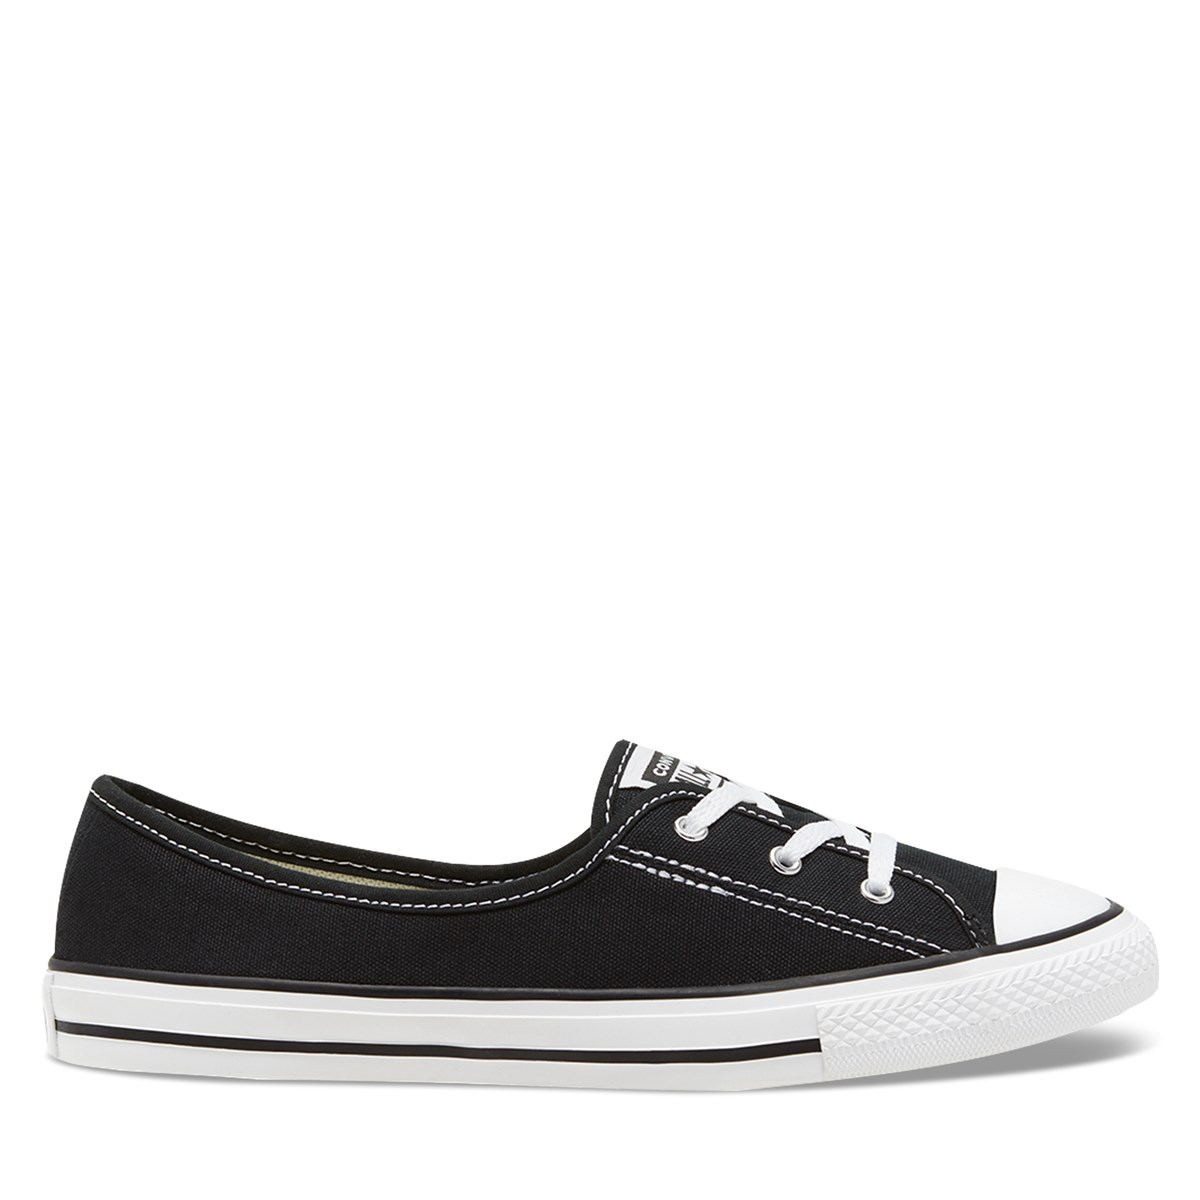 Women's Chuck Taylor All Star Ballet Slip-Ons in Black